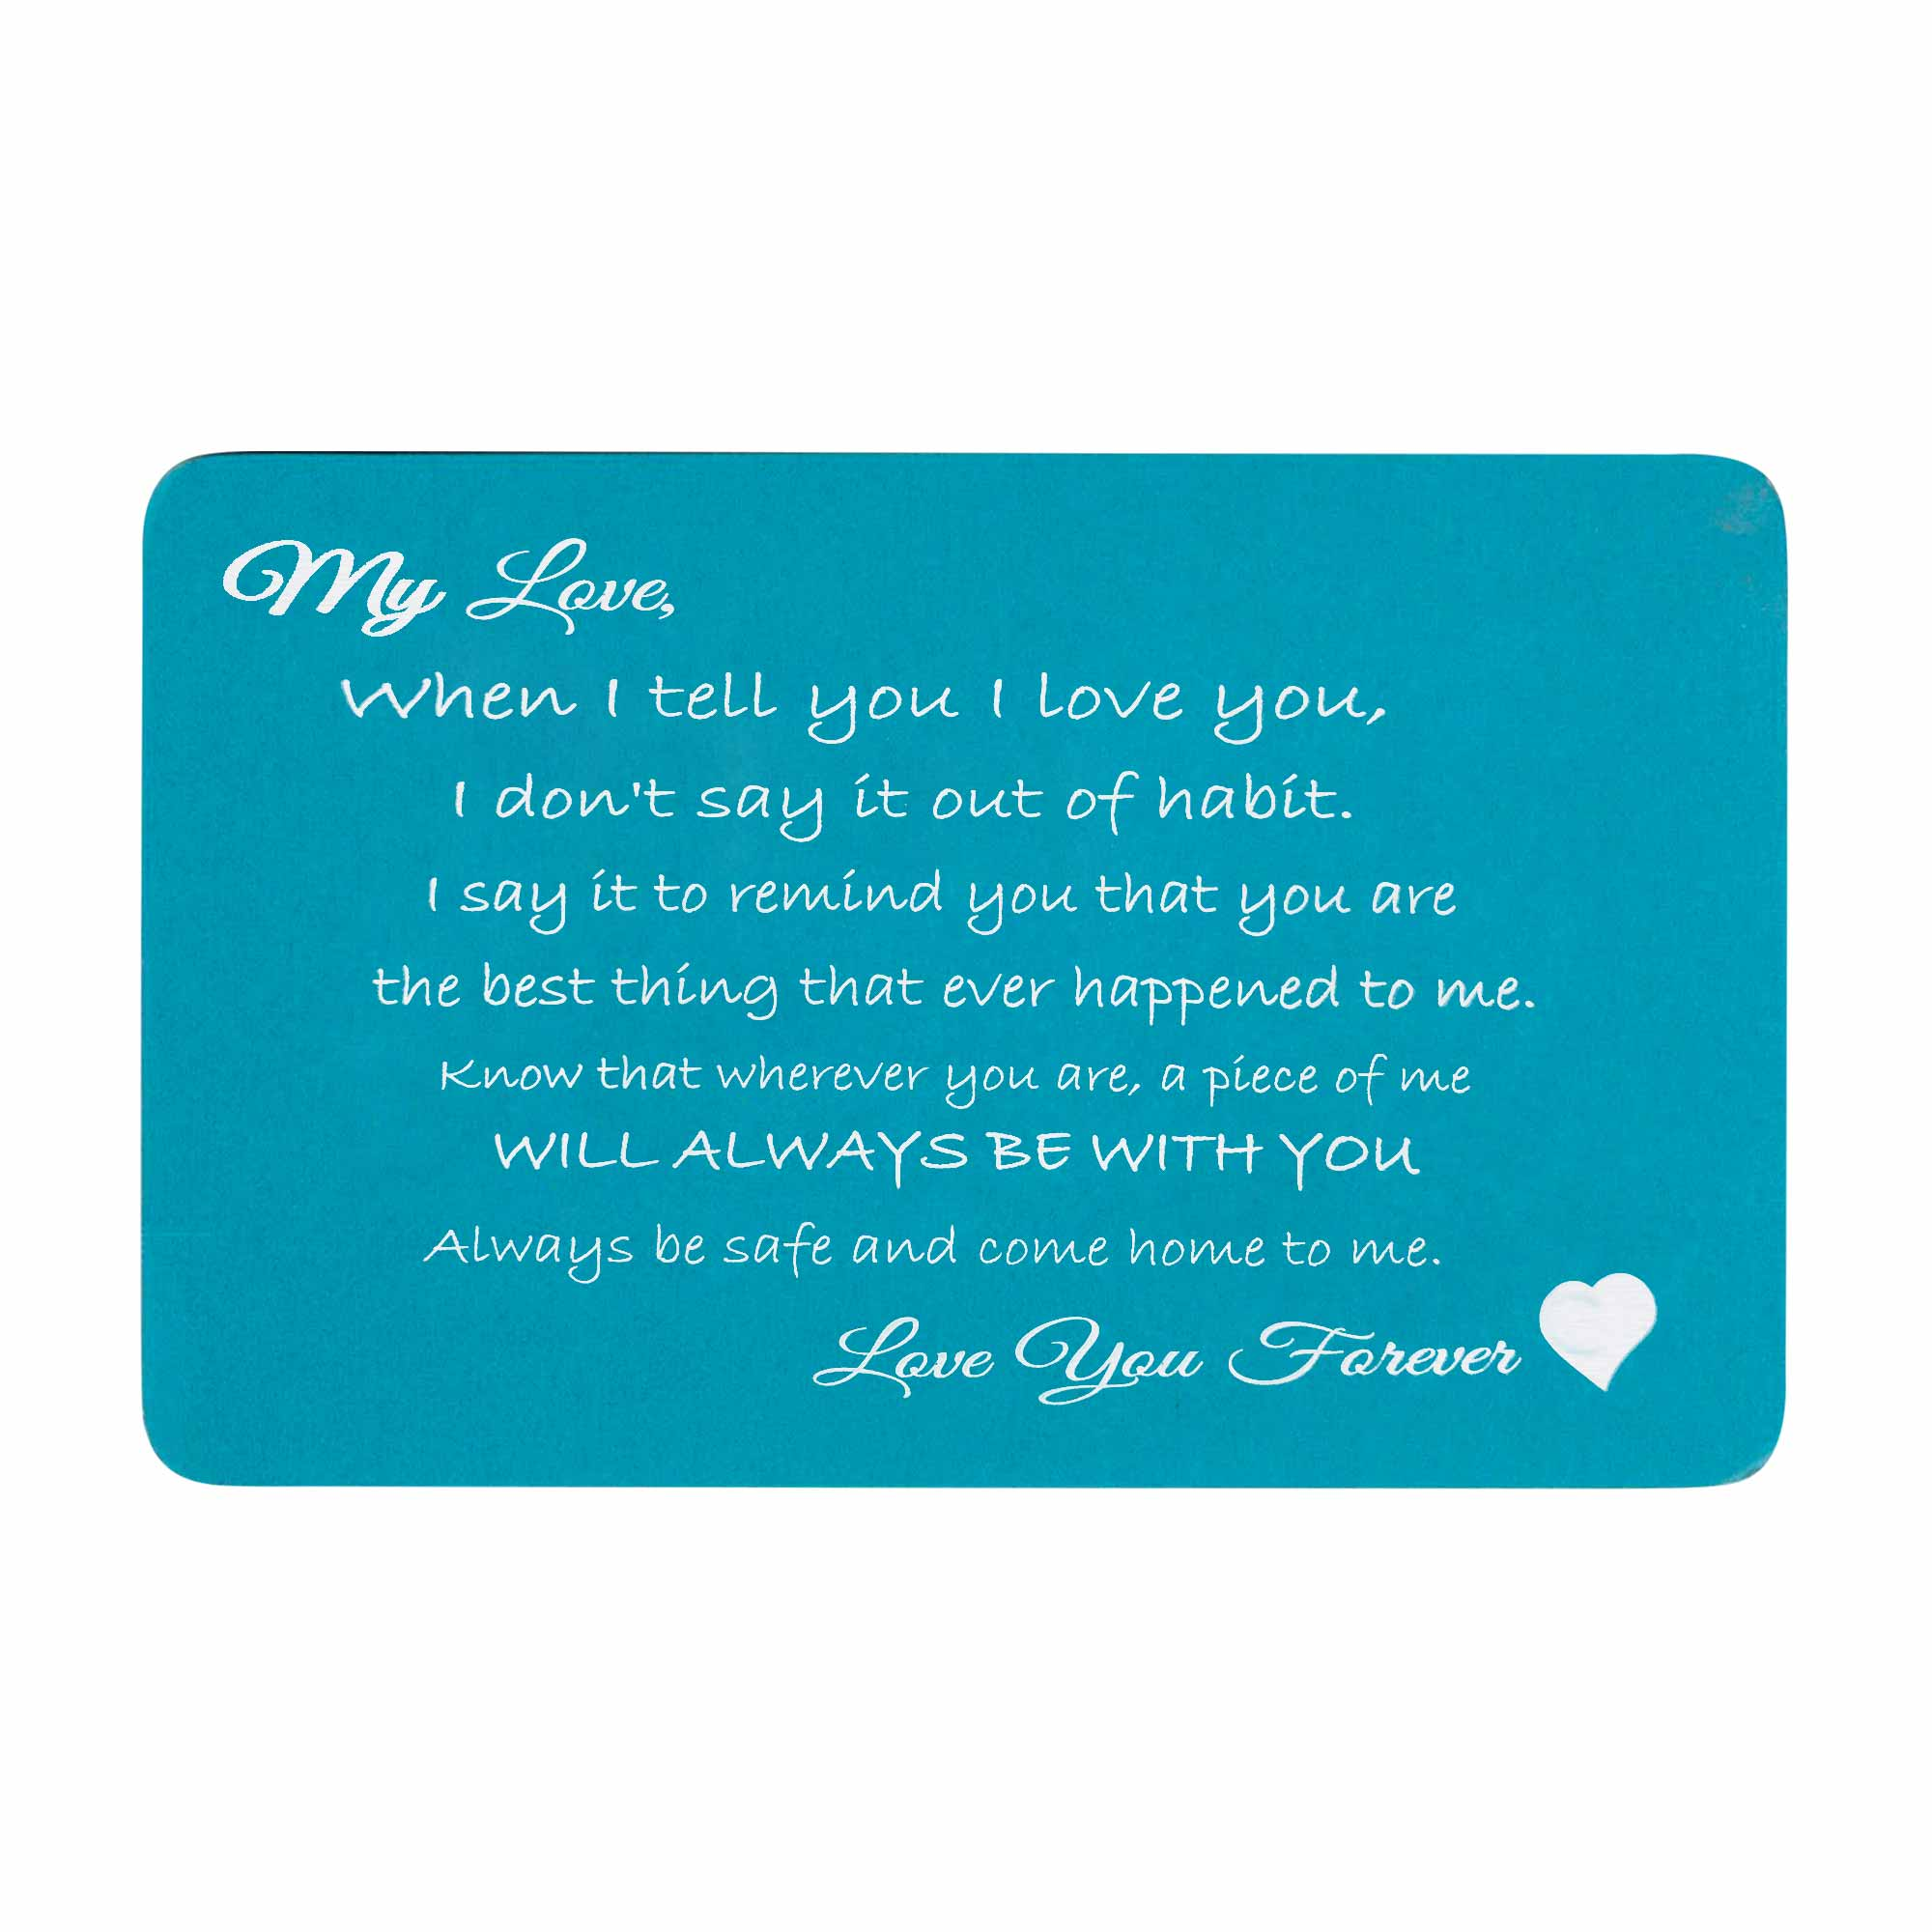 Love You Forever Engraved Metal Wallet Mini Insert Card - Blue